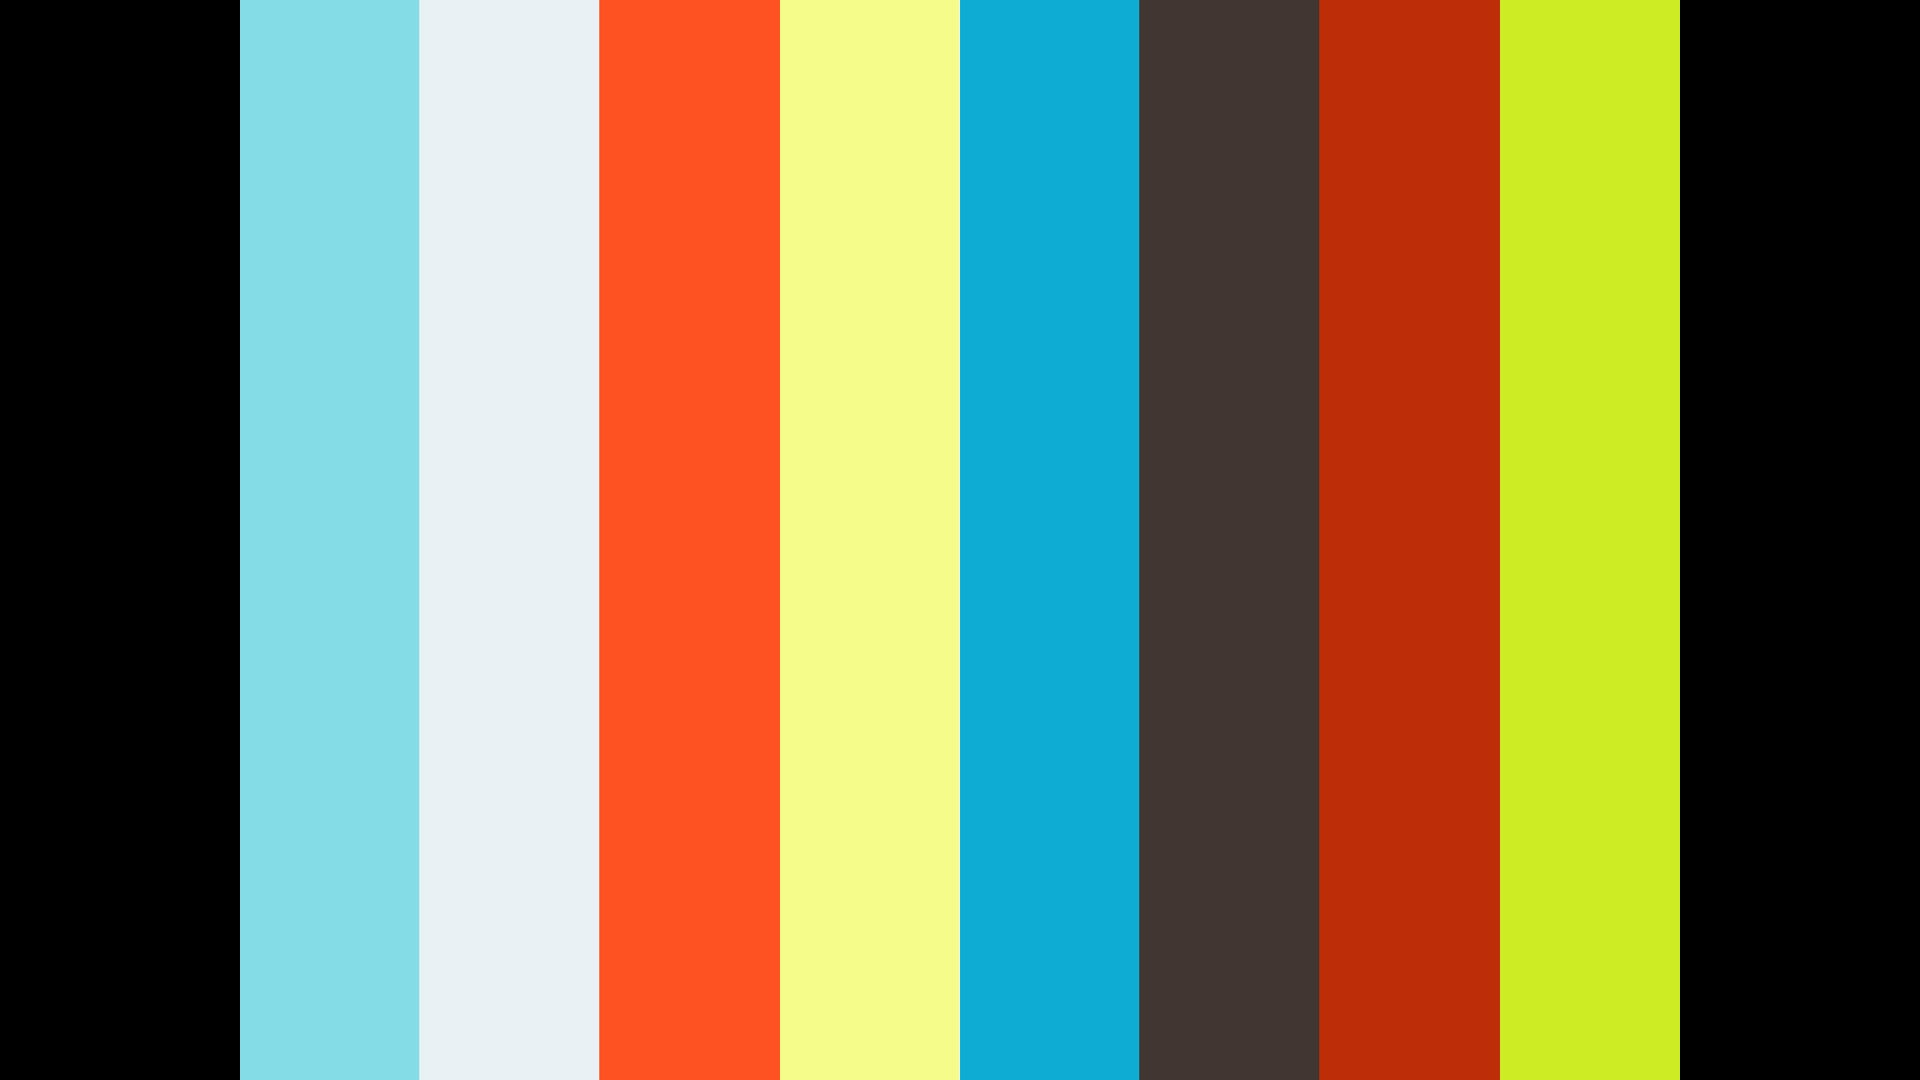 LIQUIDVERSE Apollo 11 (excerpt from concert 7-20-19)